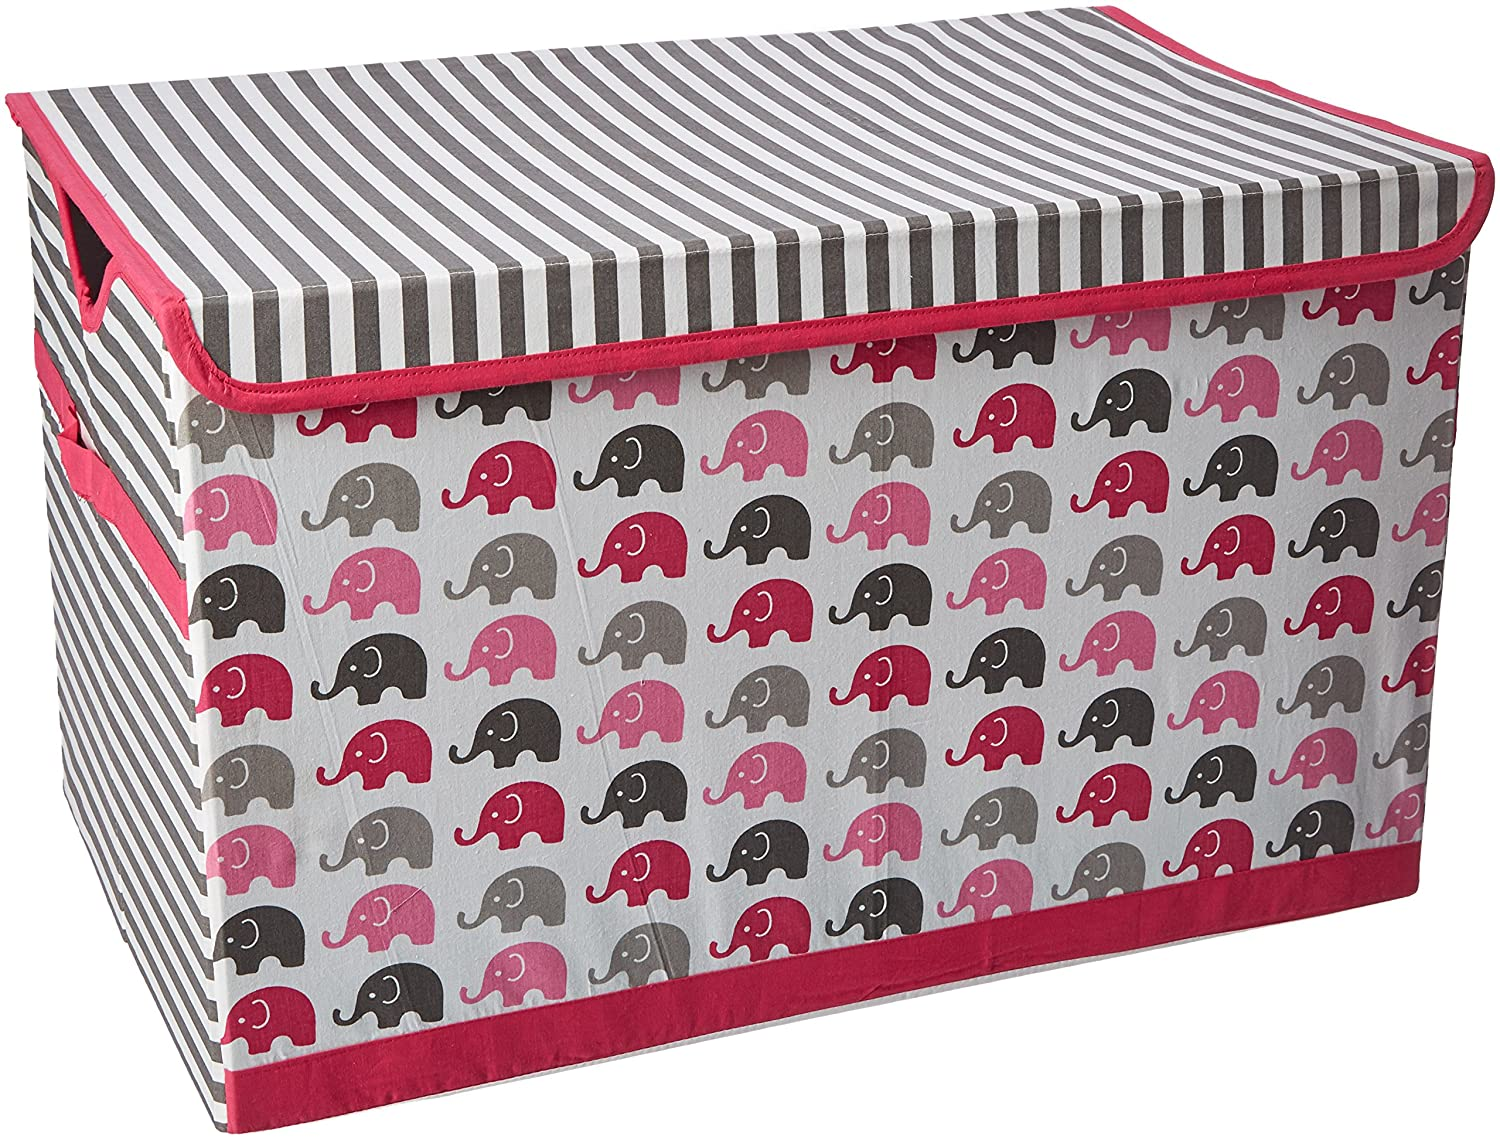 Bacati Elephants Storage Tote Toy Chest, Pink/Grey EPGSTC